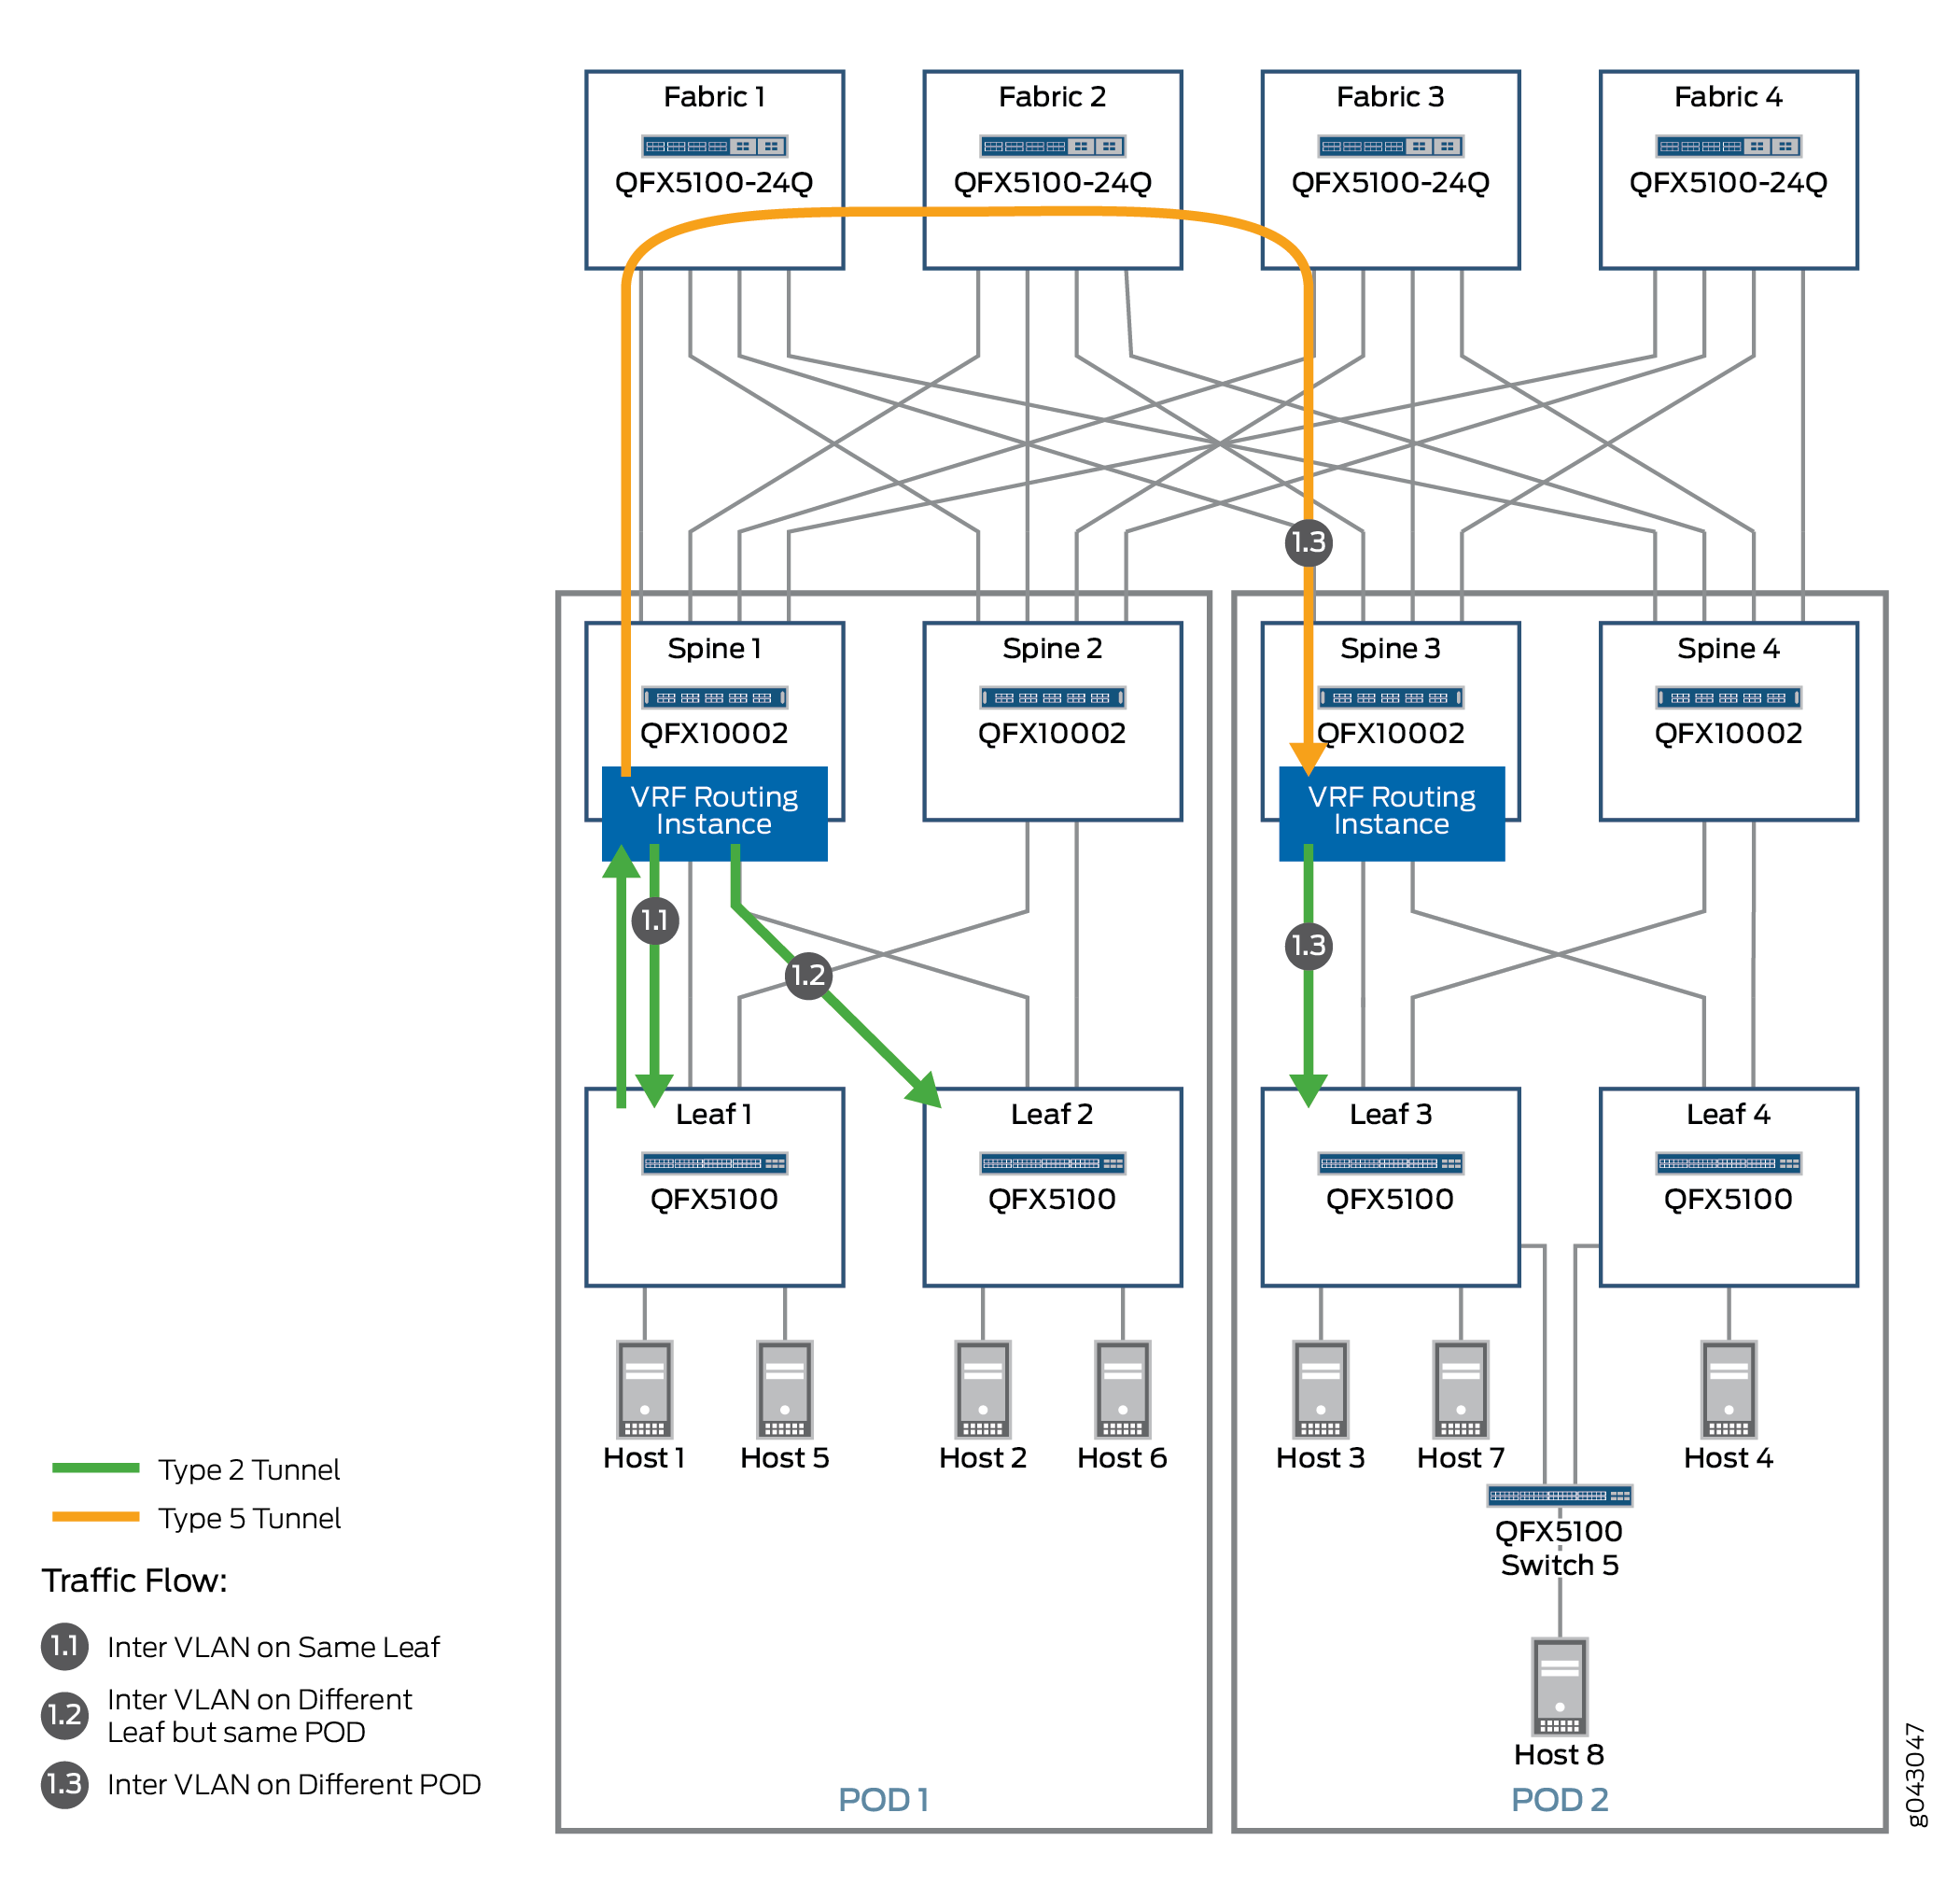 IaaS: EVPN and VXLAN Solution - Type 2 and Type 5 Inter-VLAN Traffic